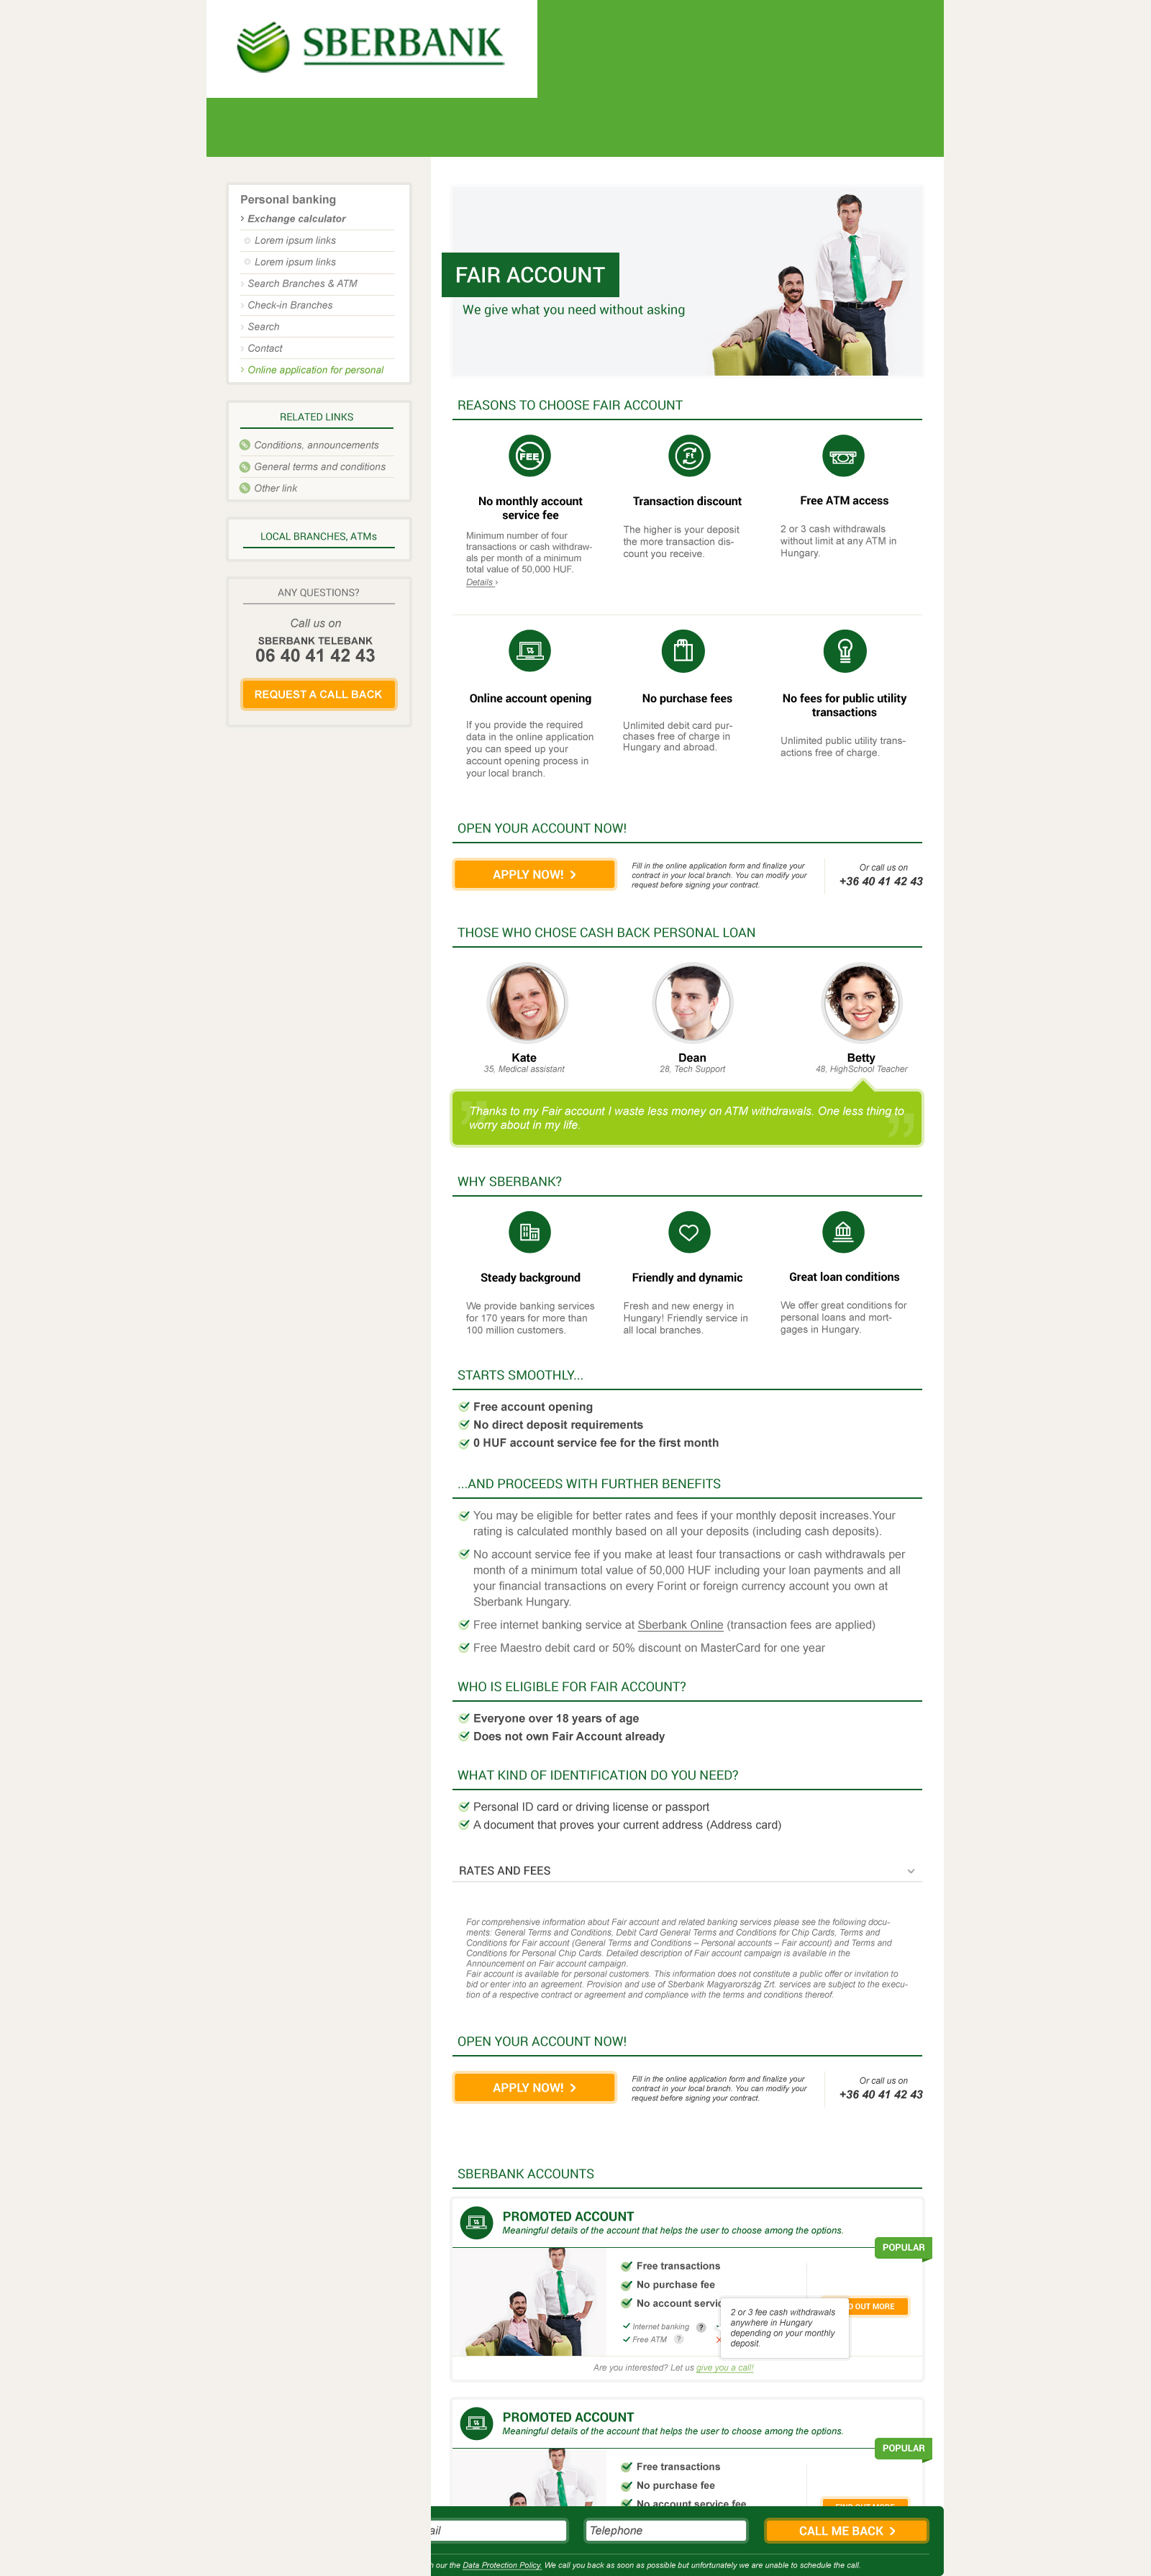 sberbank_account_product-closed